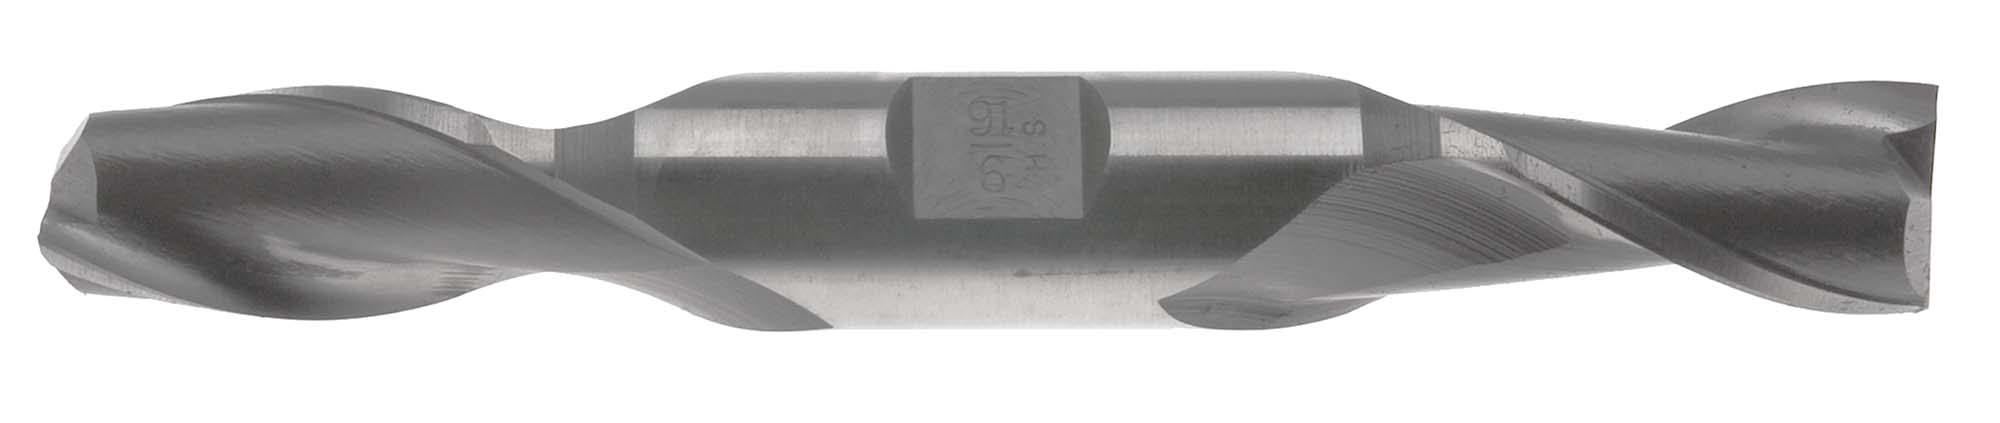 "EM-C24  3/4"" Double End 2 Flute End Mill, High Speed Steel,  3/4"" Shank"